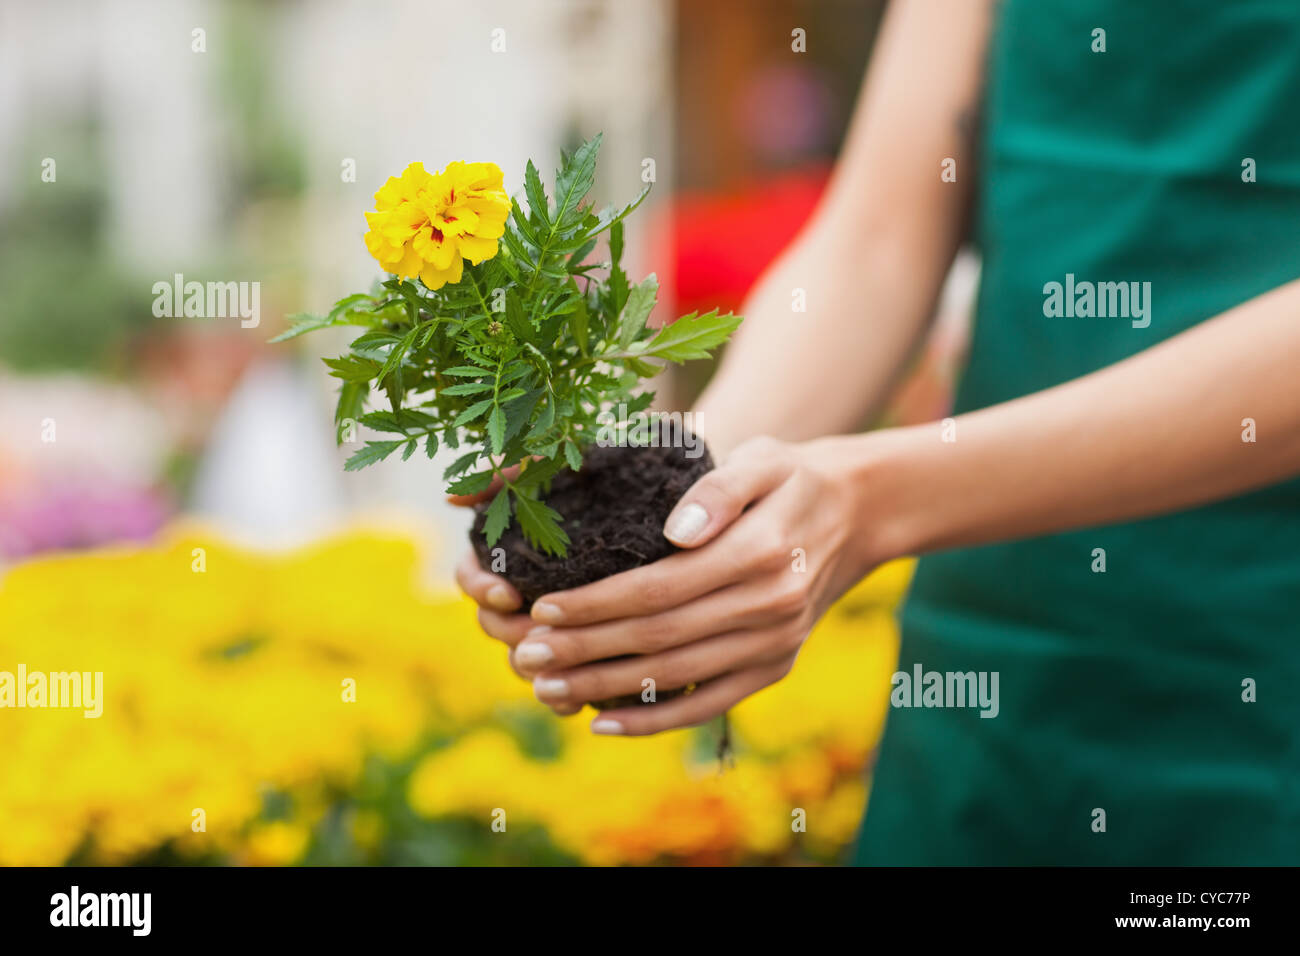 Grow Assistant Stock Photos & Grow Assistant Stock Images